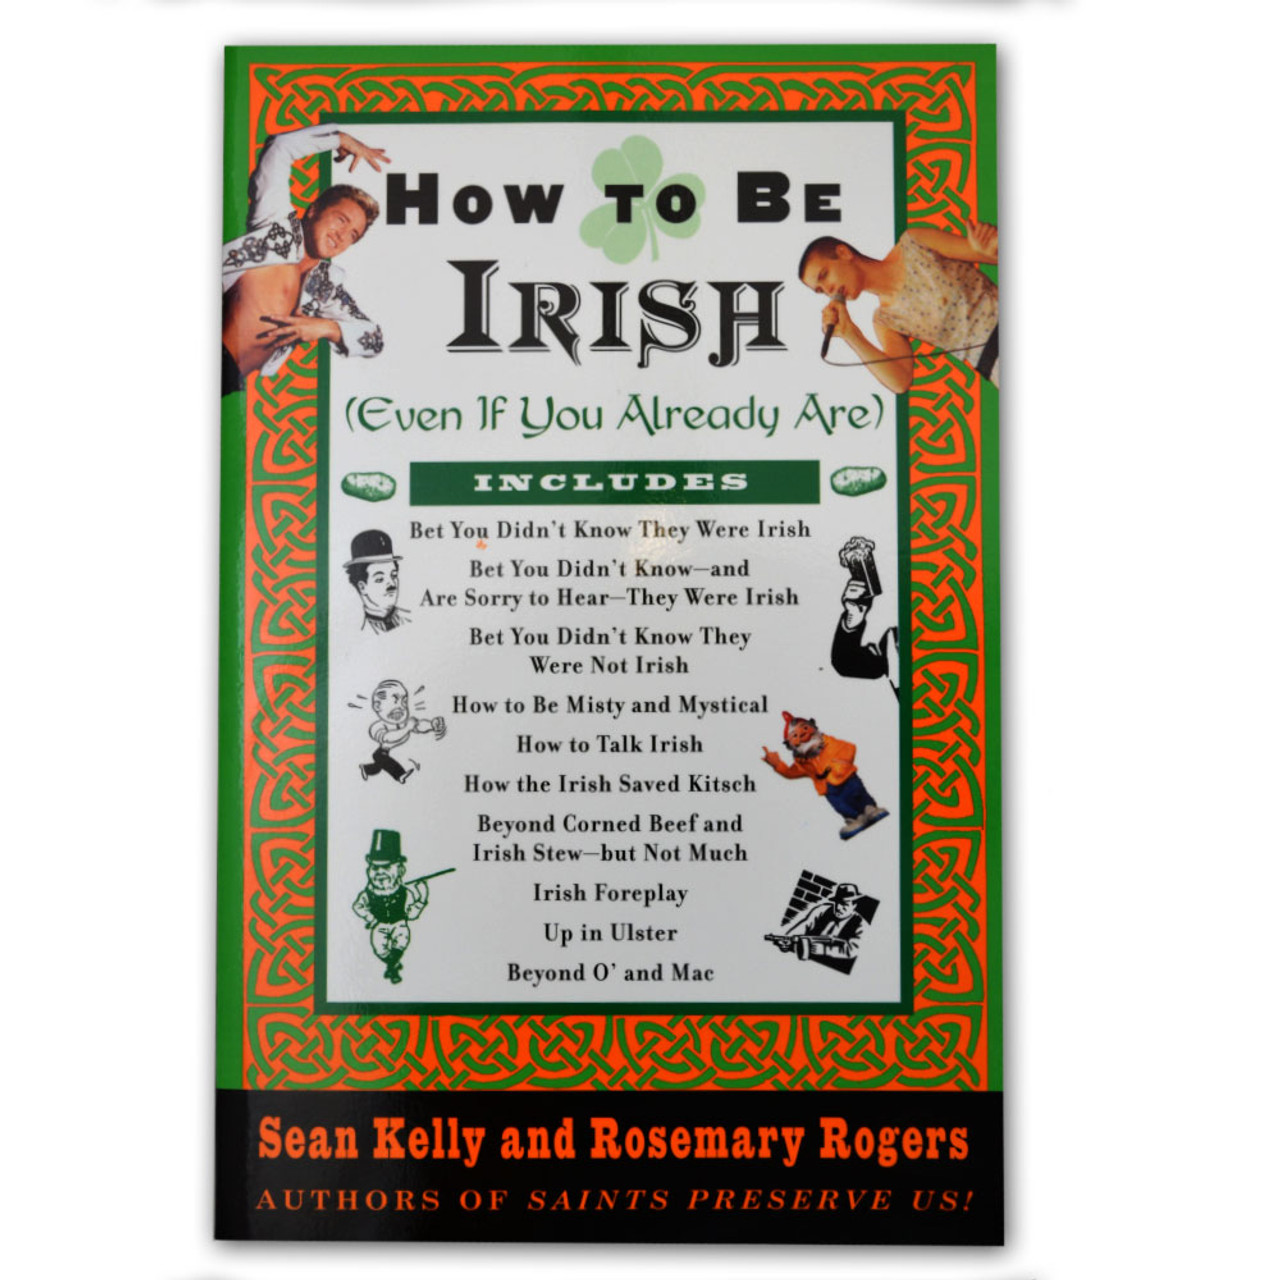 How to be Irish (Even If You Already Are) Gift Book